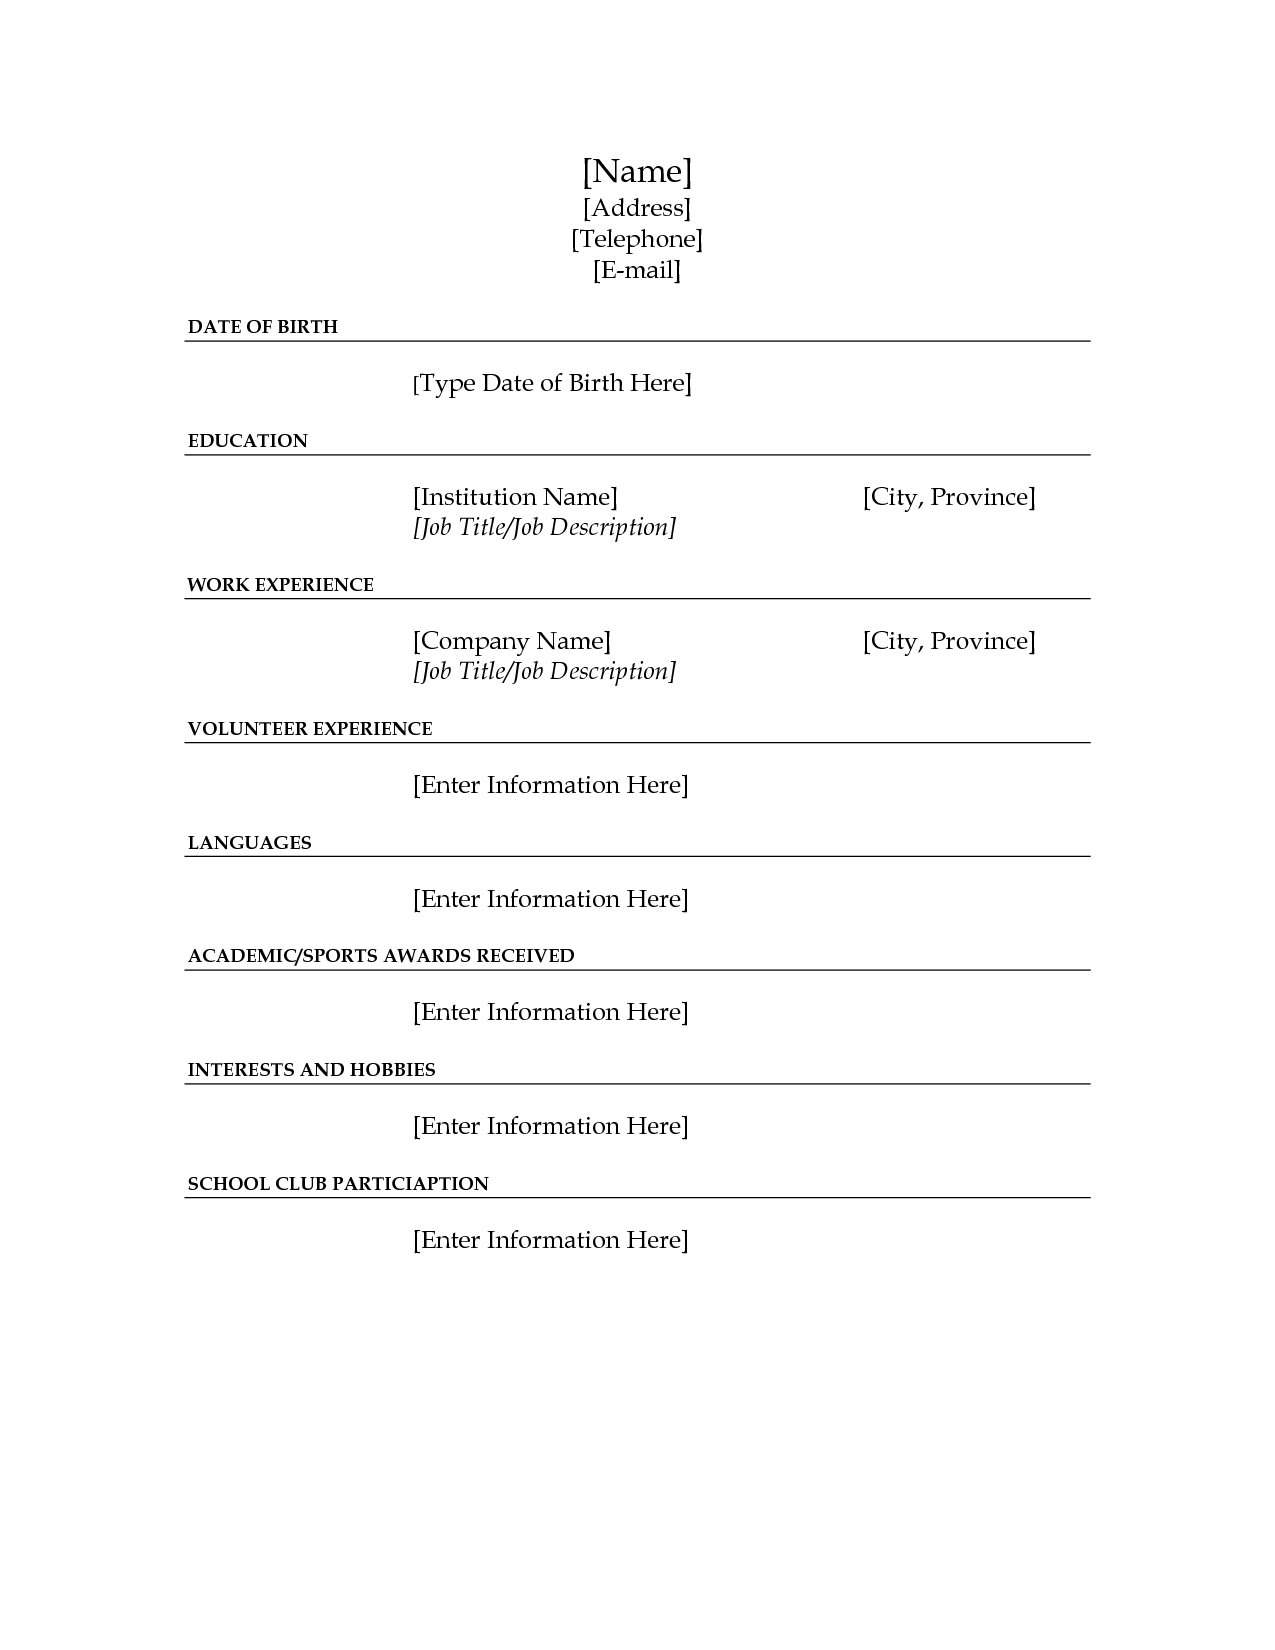 Free Online Resume Templates Printable And Builder For Template Maker App  Free Online Resume Templates Printable